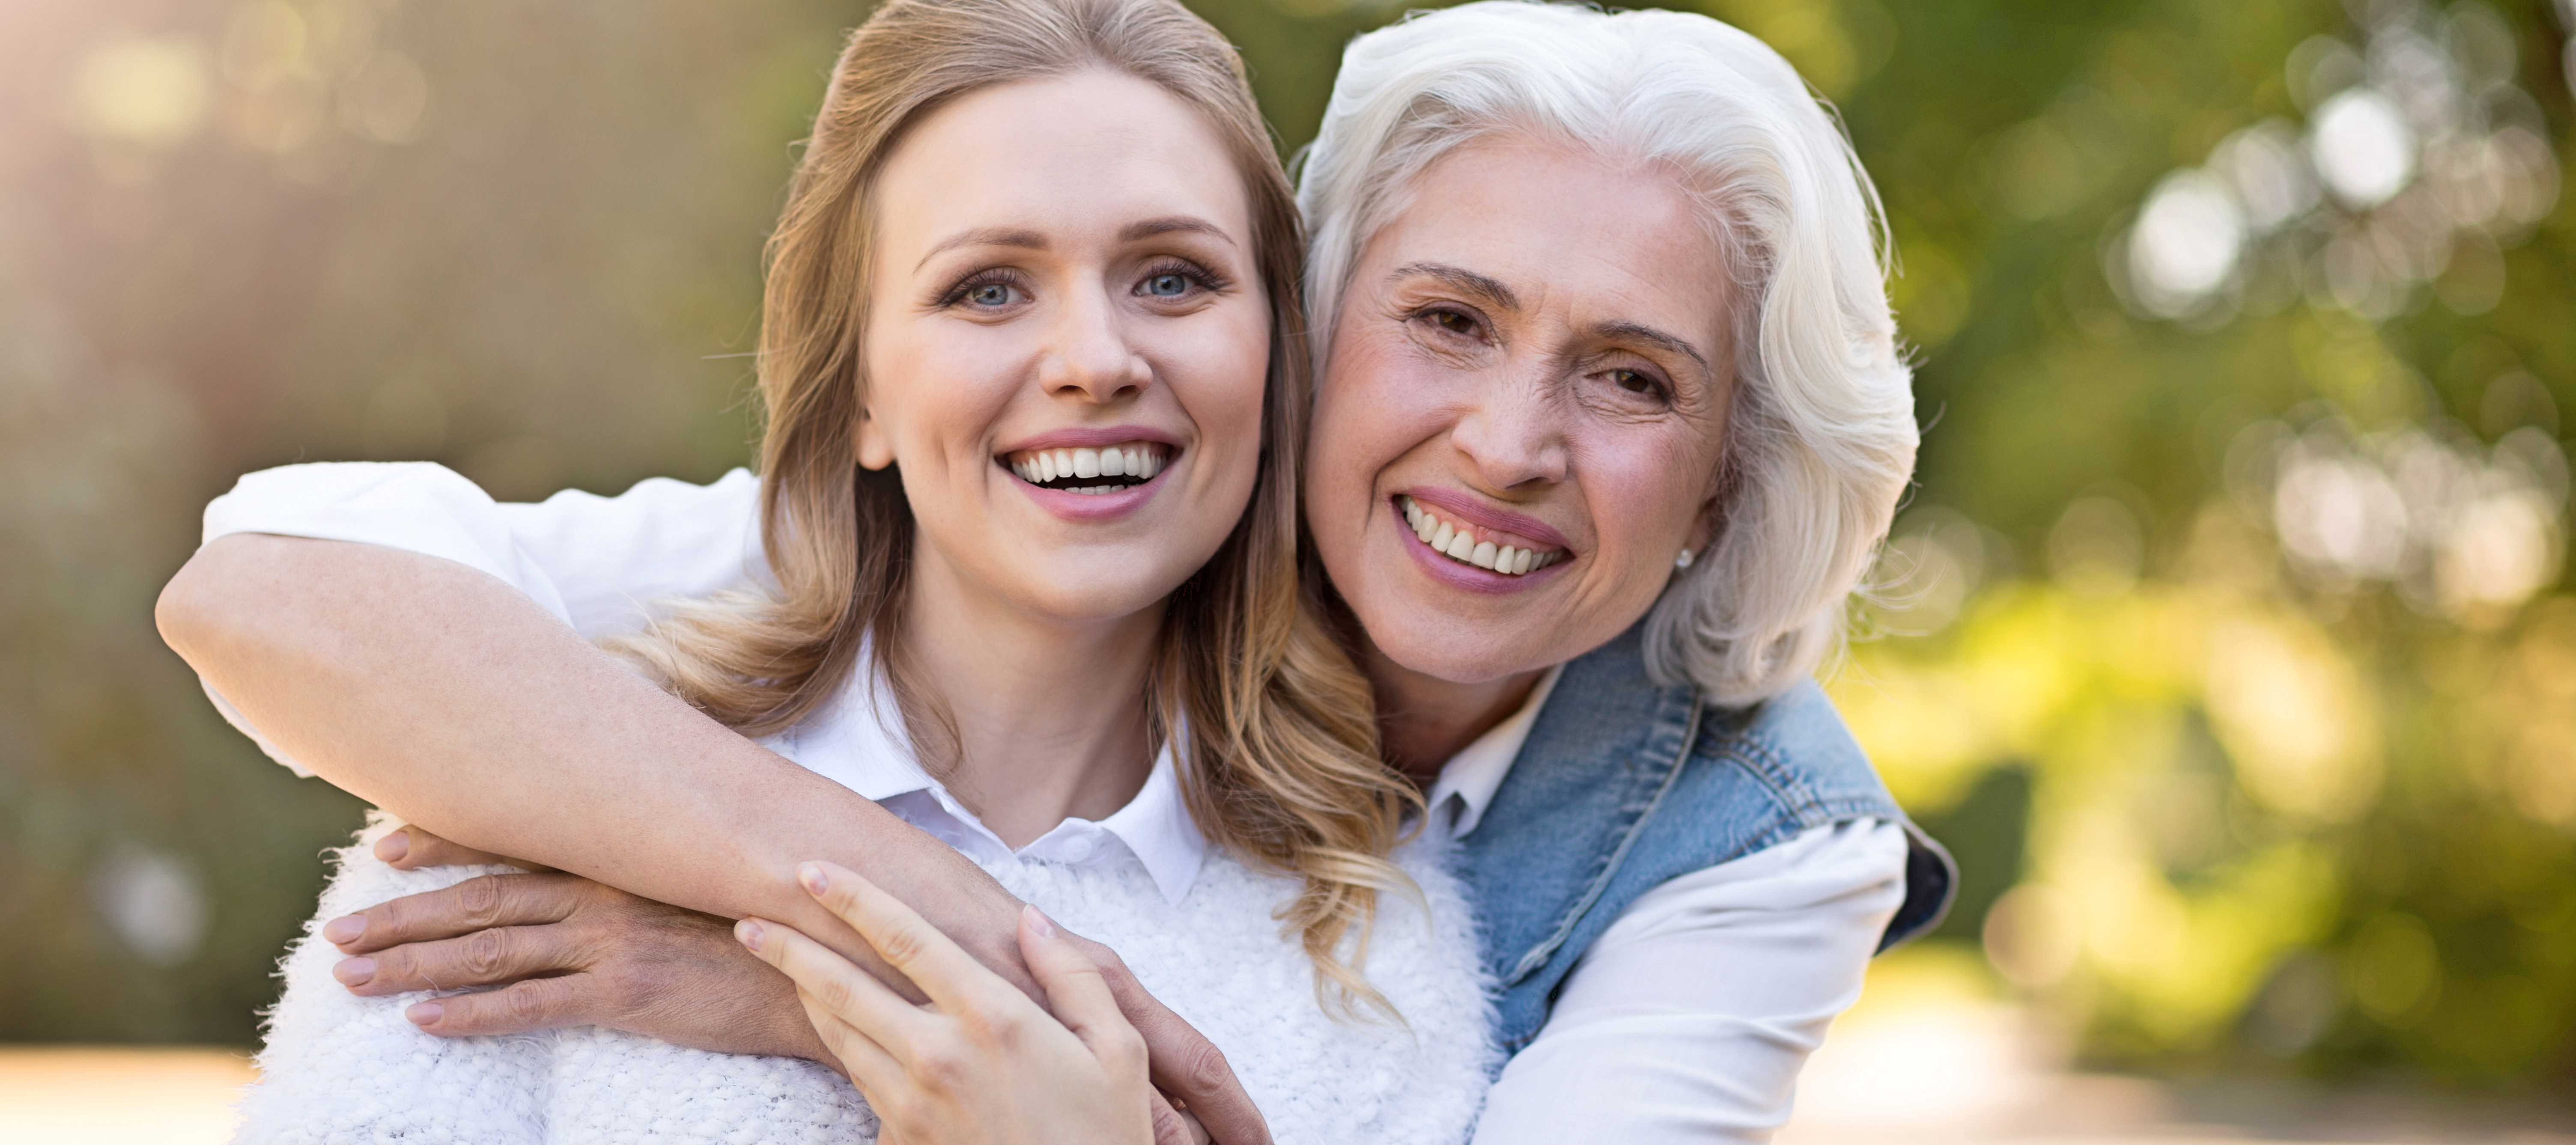 Our May Mother's Day 2019 Specials on Aesthetics in Springfield Missouri